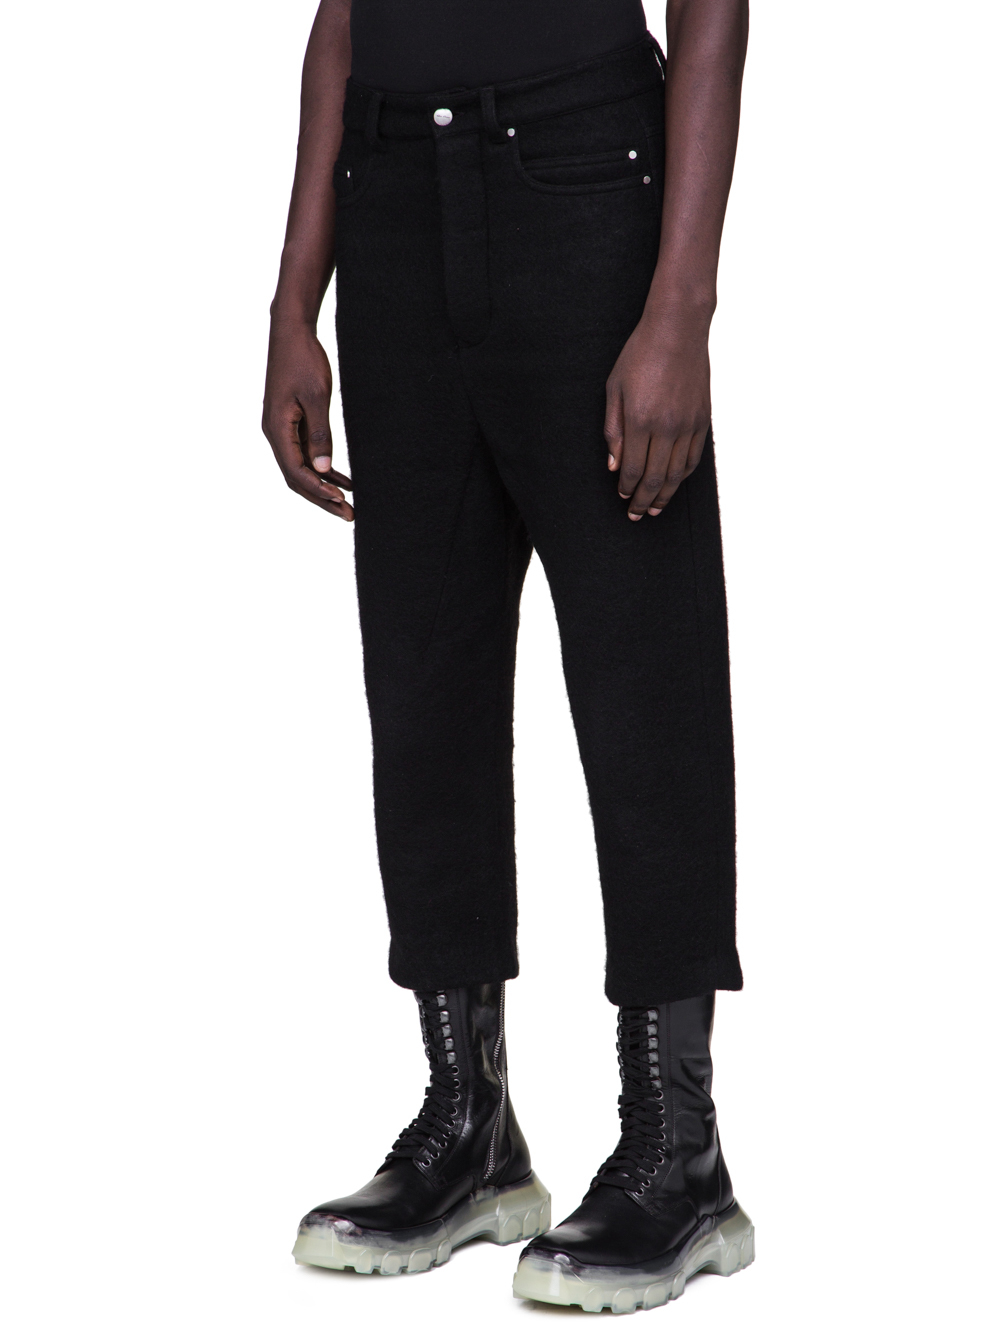 RICK OWENS FW18 SISYPHUS OFF-THE-RUNWAY COLLAPSE JEANS IN BLACK BOILED WOOL